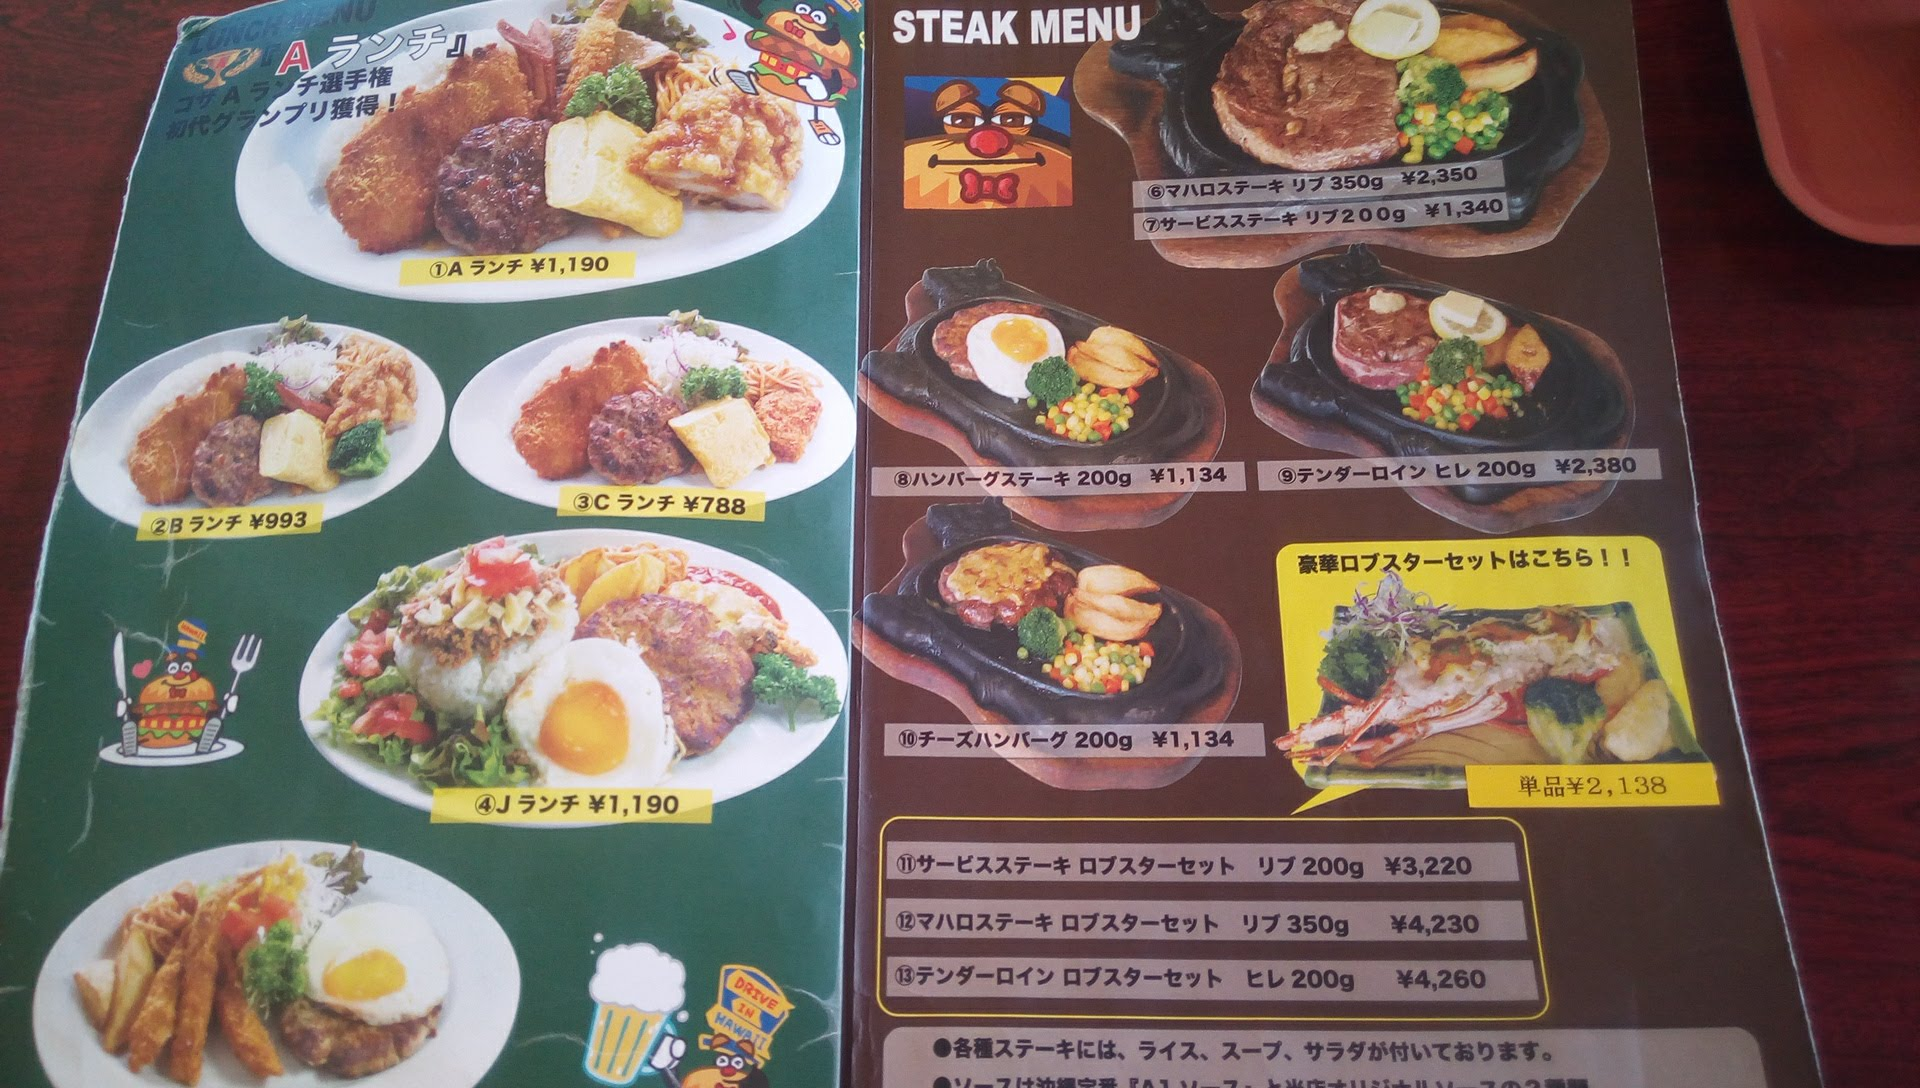 Restaurant Hawaii menu 1